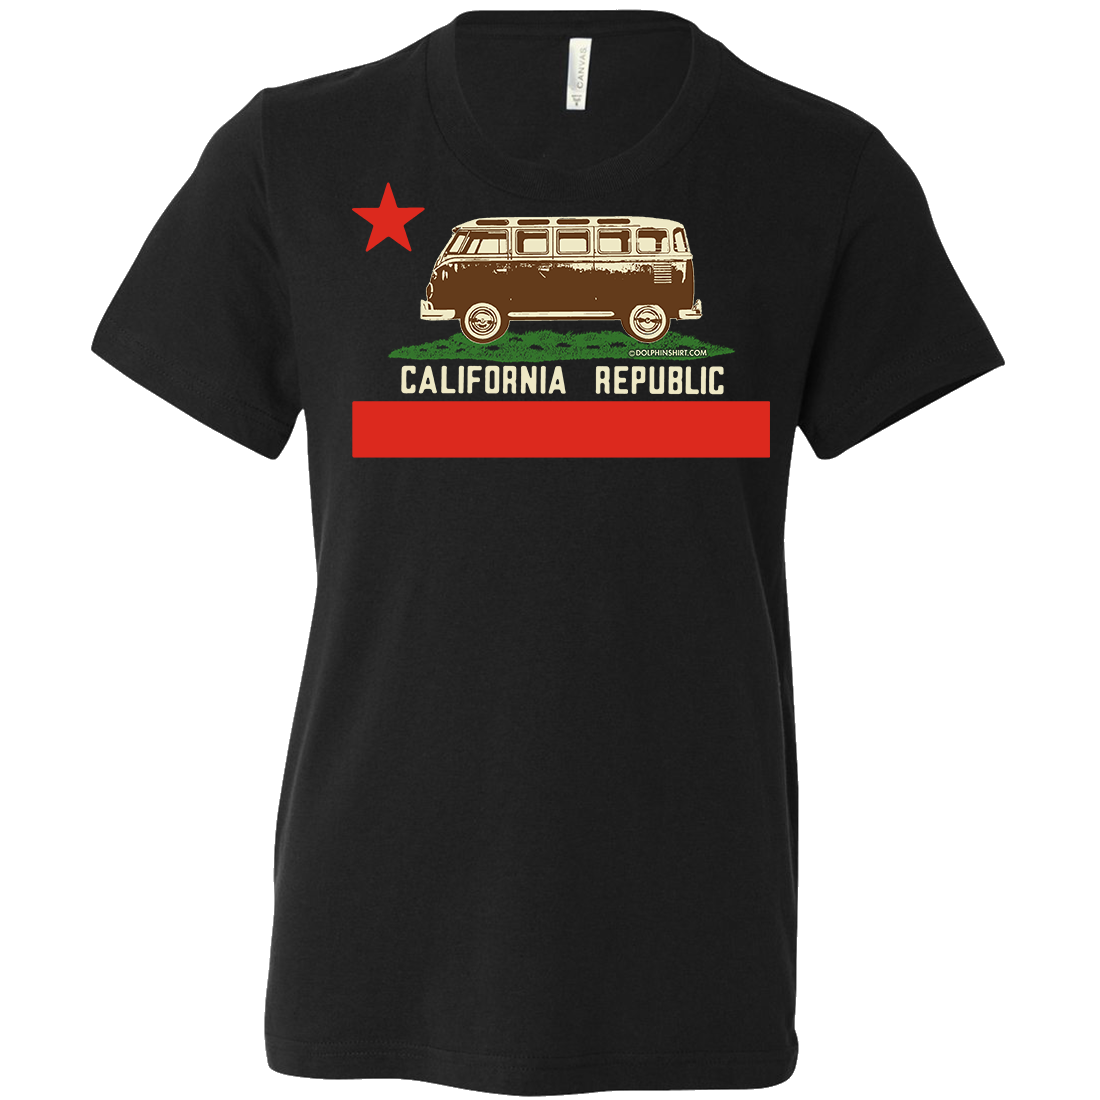 California Republic Vintage Van Asst Colors Youth T-Shirt/tee